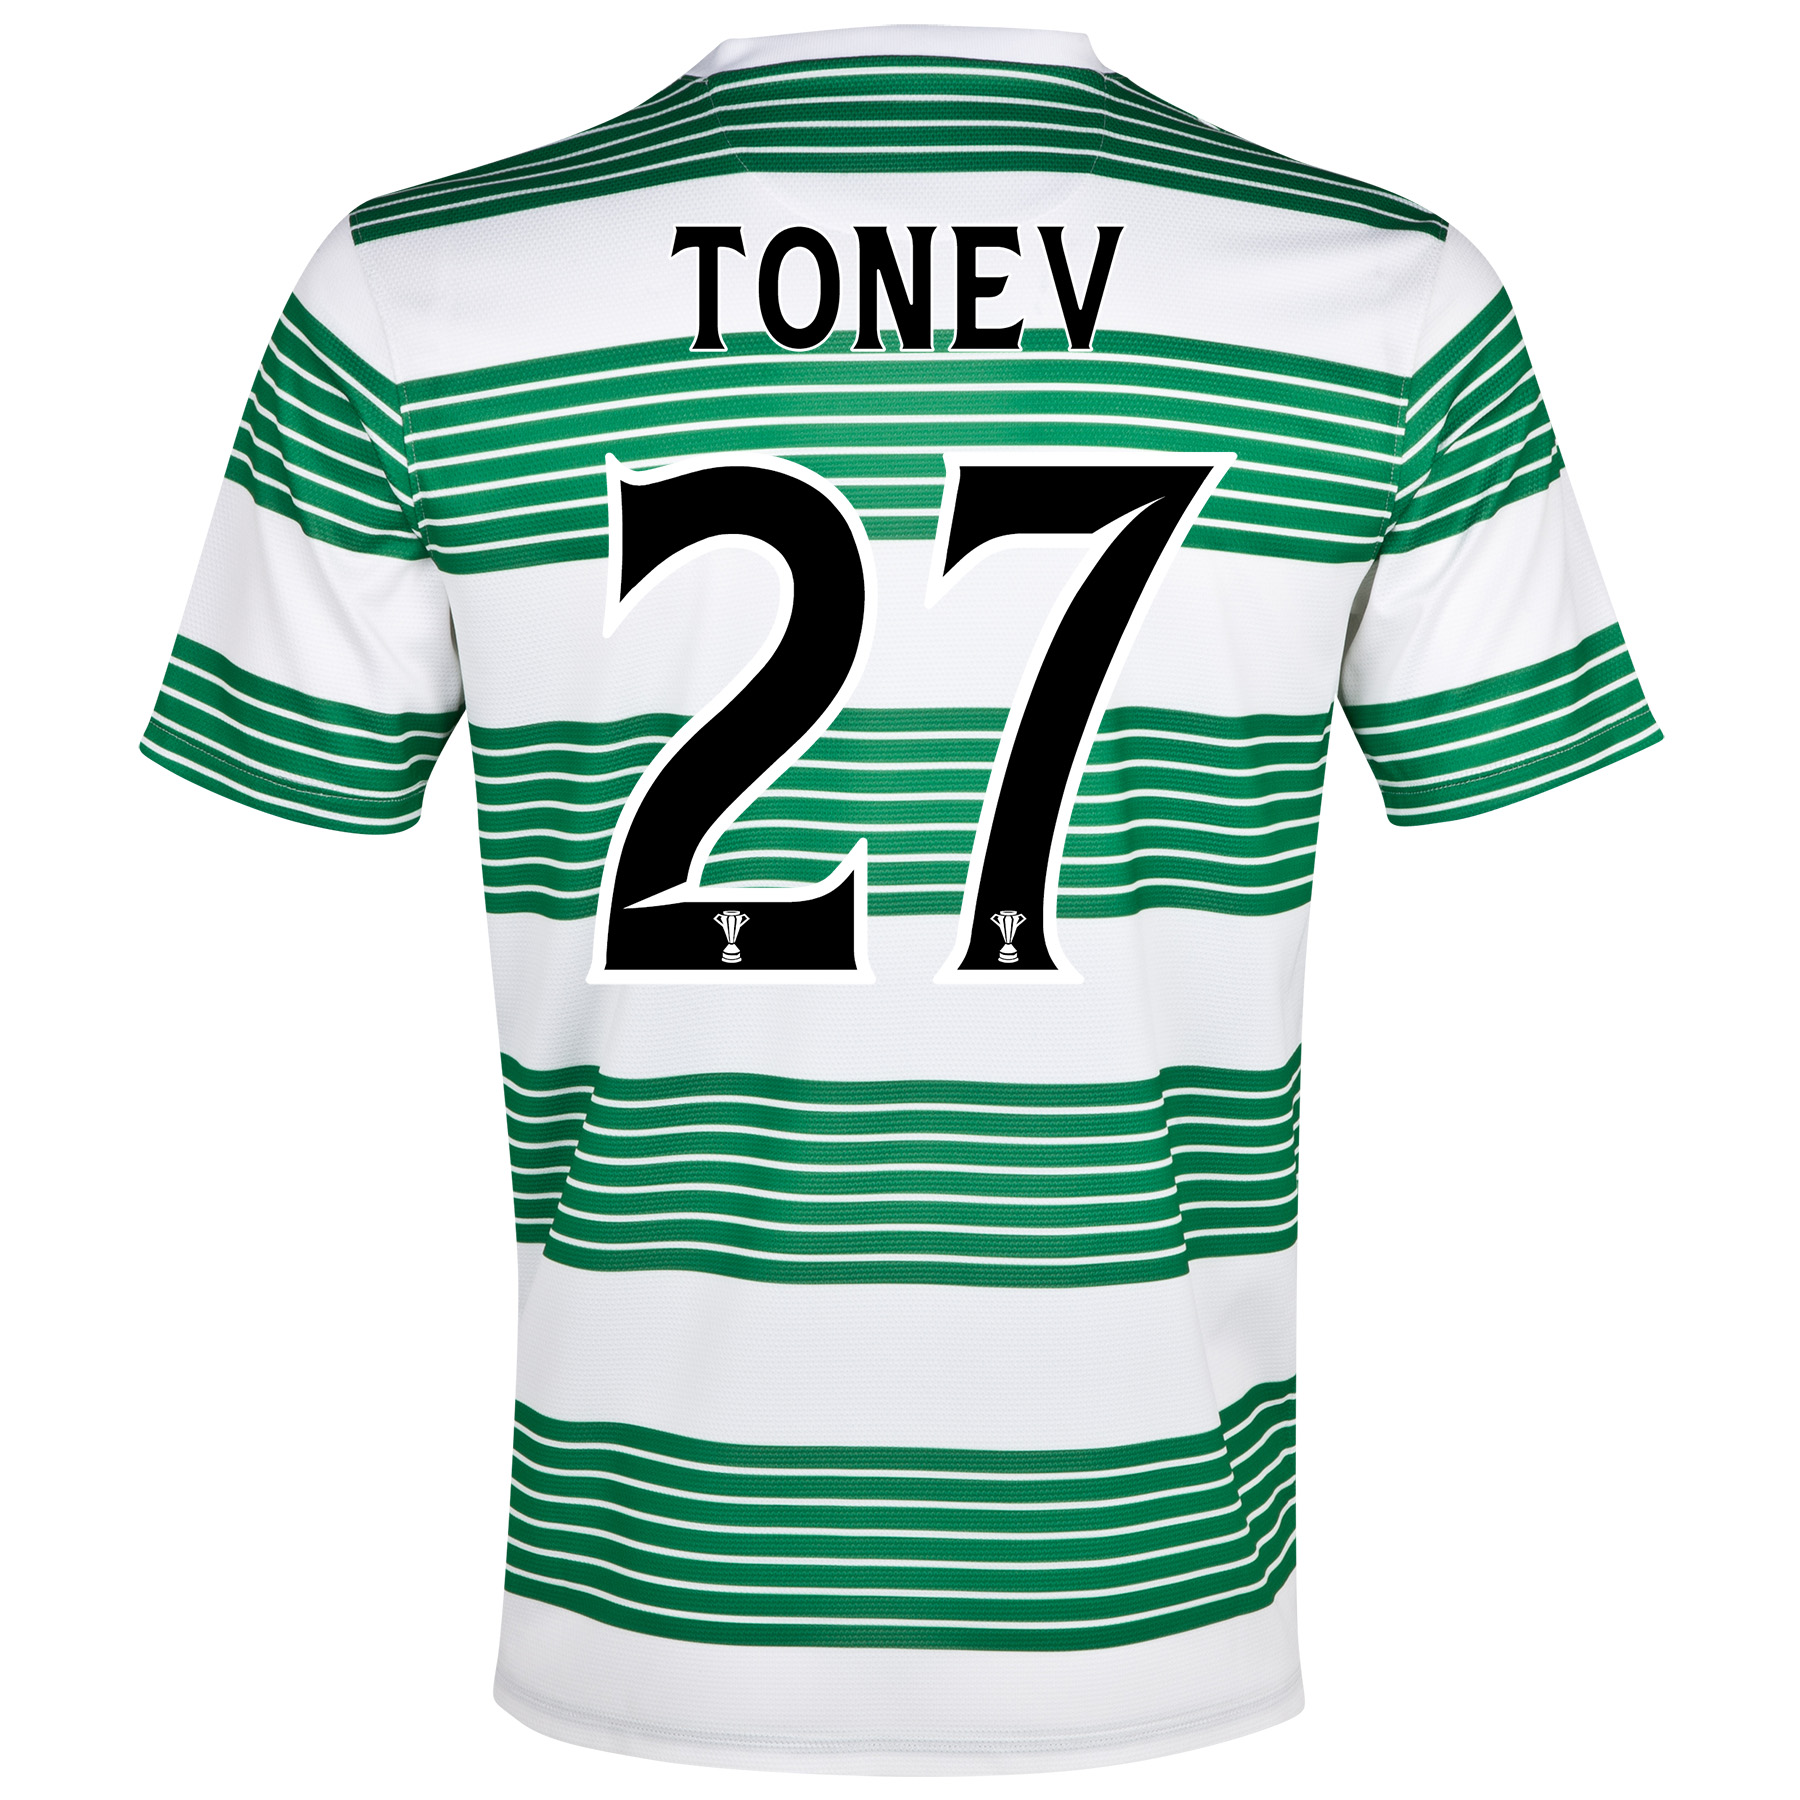 Celtic Home Shirt 2013/15 - With Sponsor with Tonev 27 printing